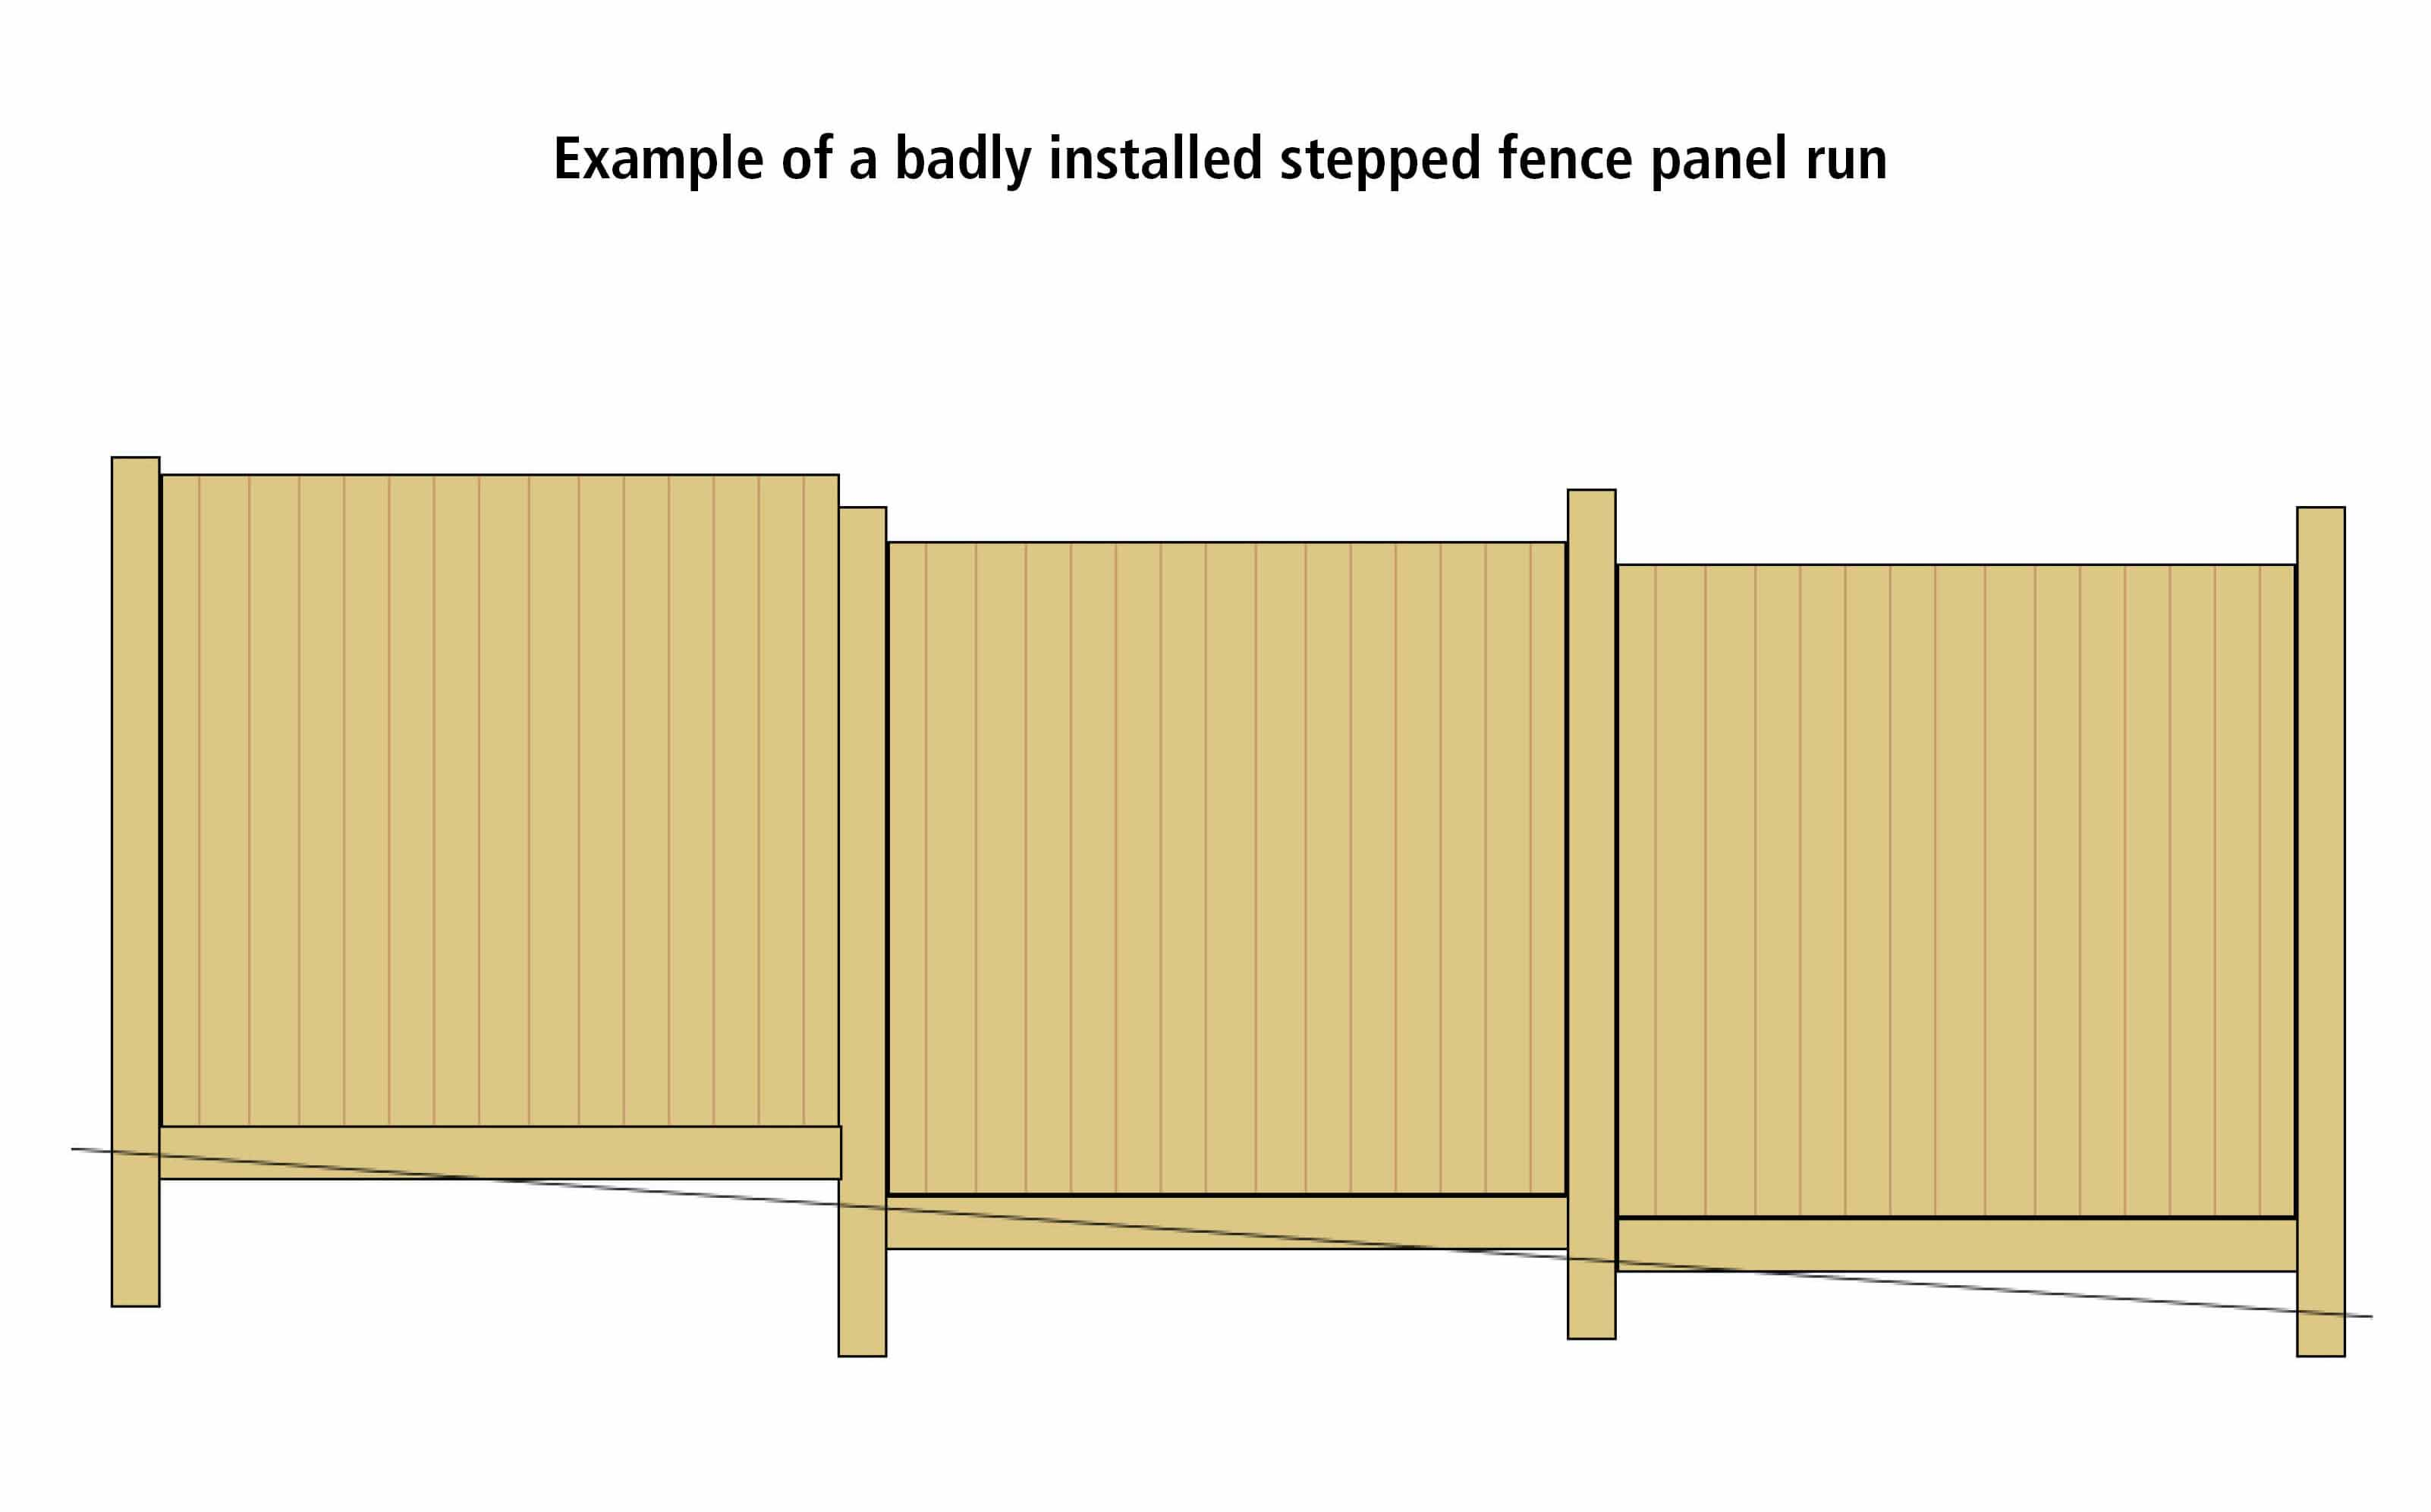 Badly installed stepped fence panel run